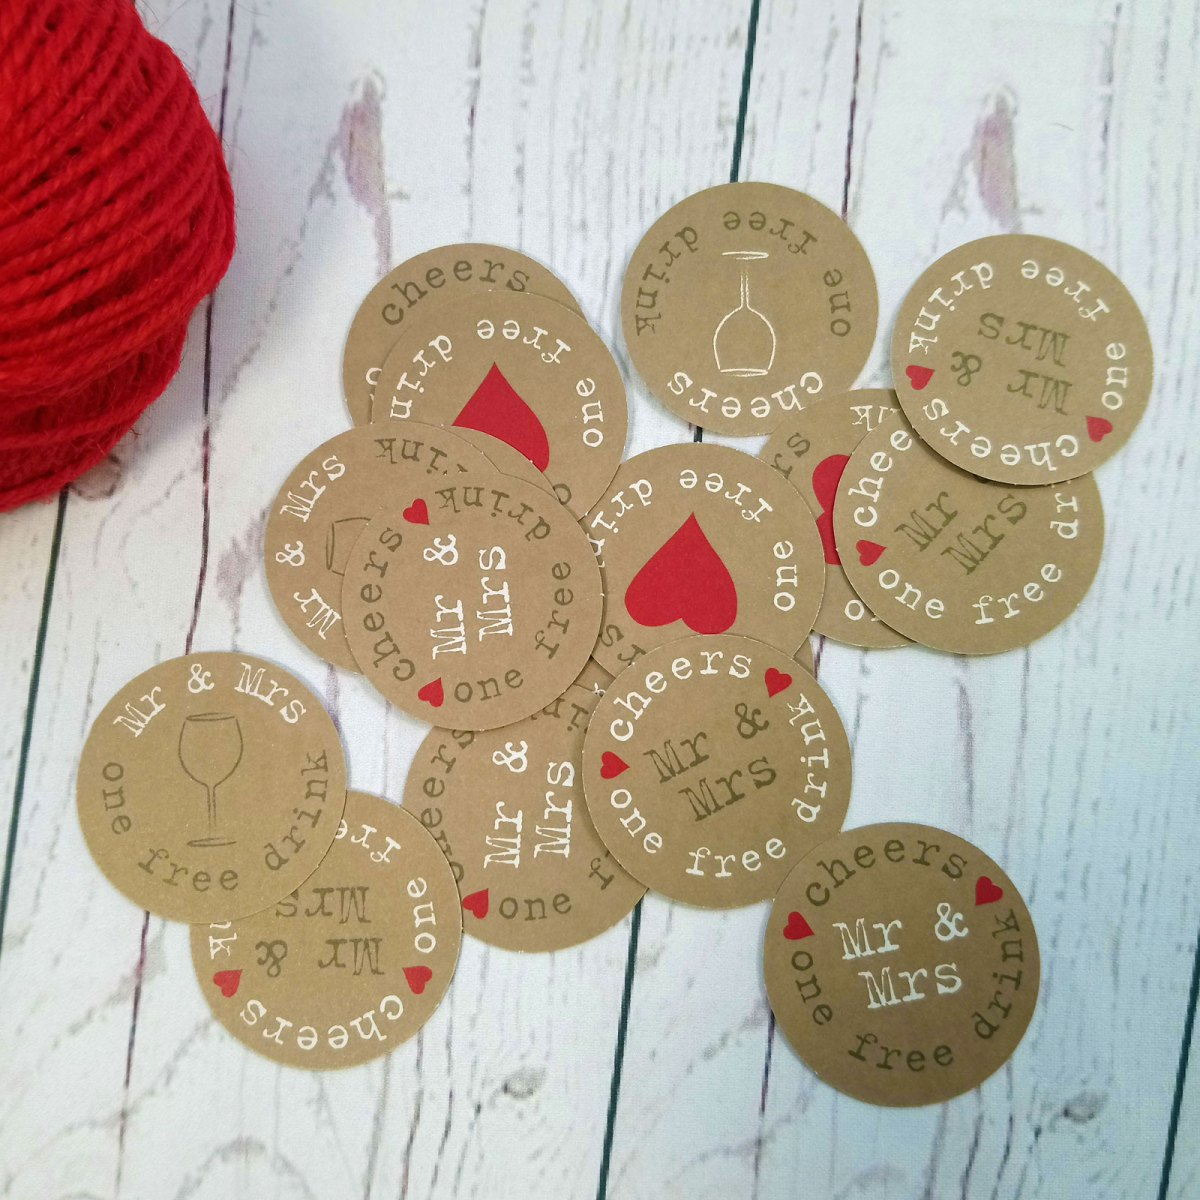 Photo Booth free drink tokens for wedding guests